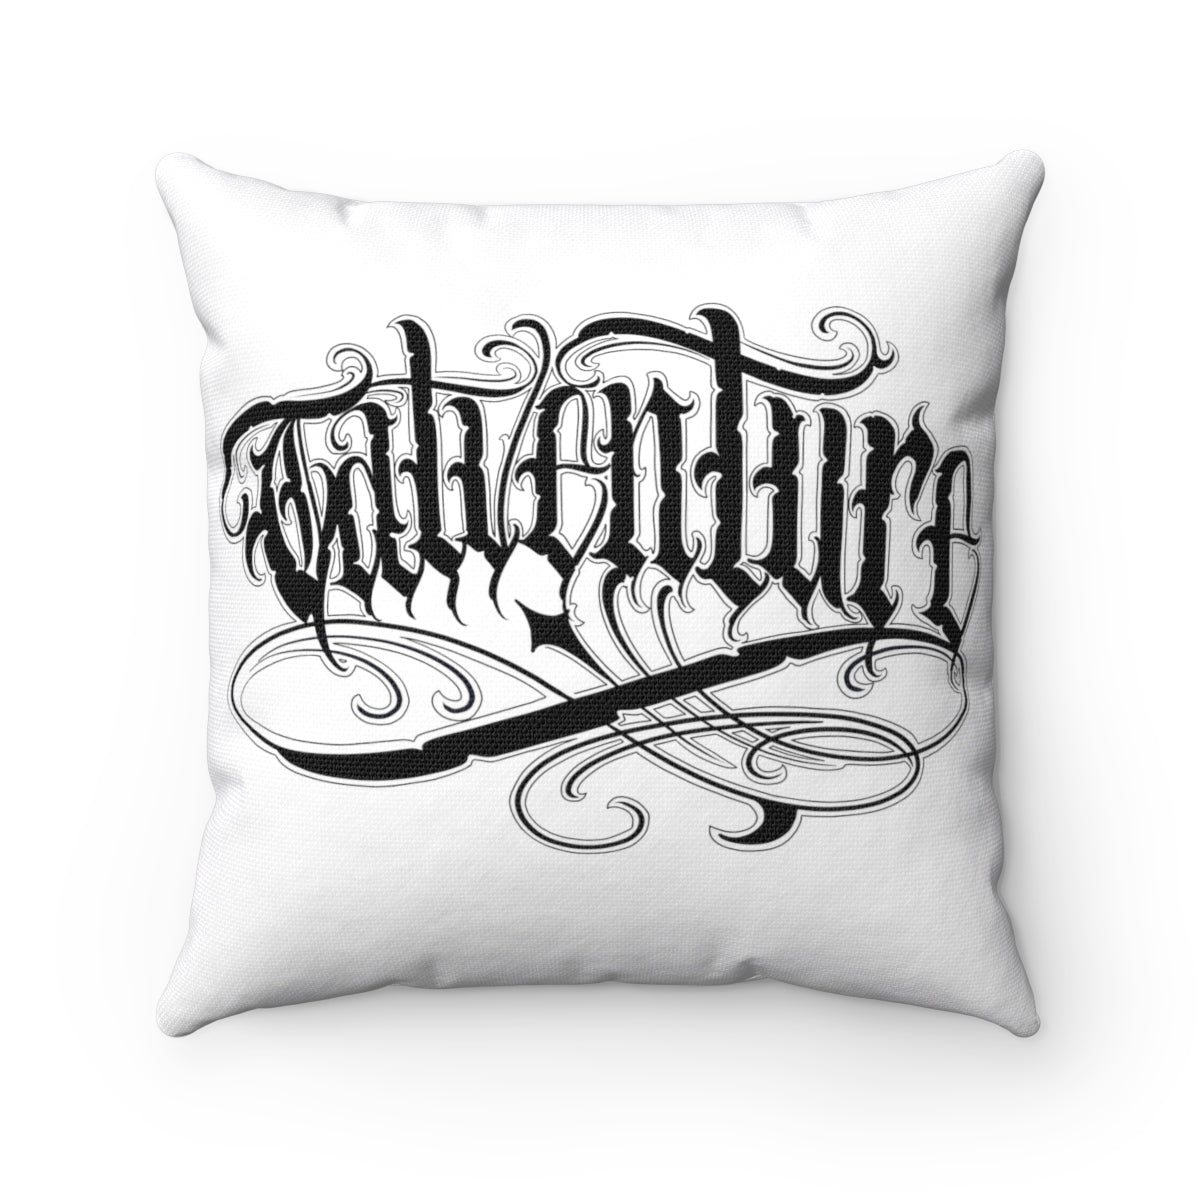 Tatventure Throw Pillow